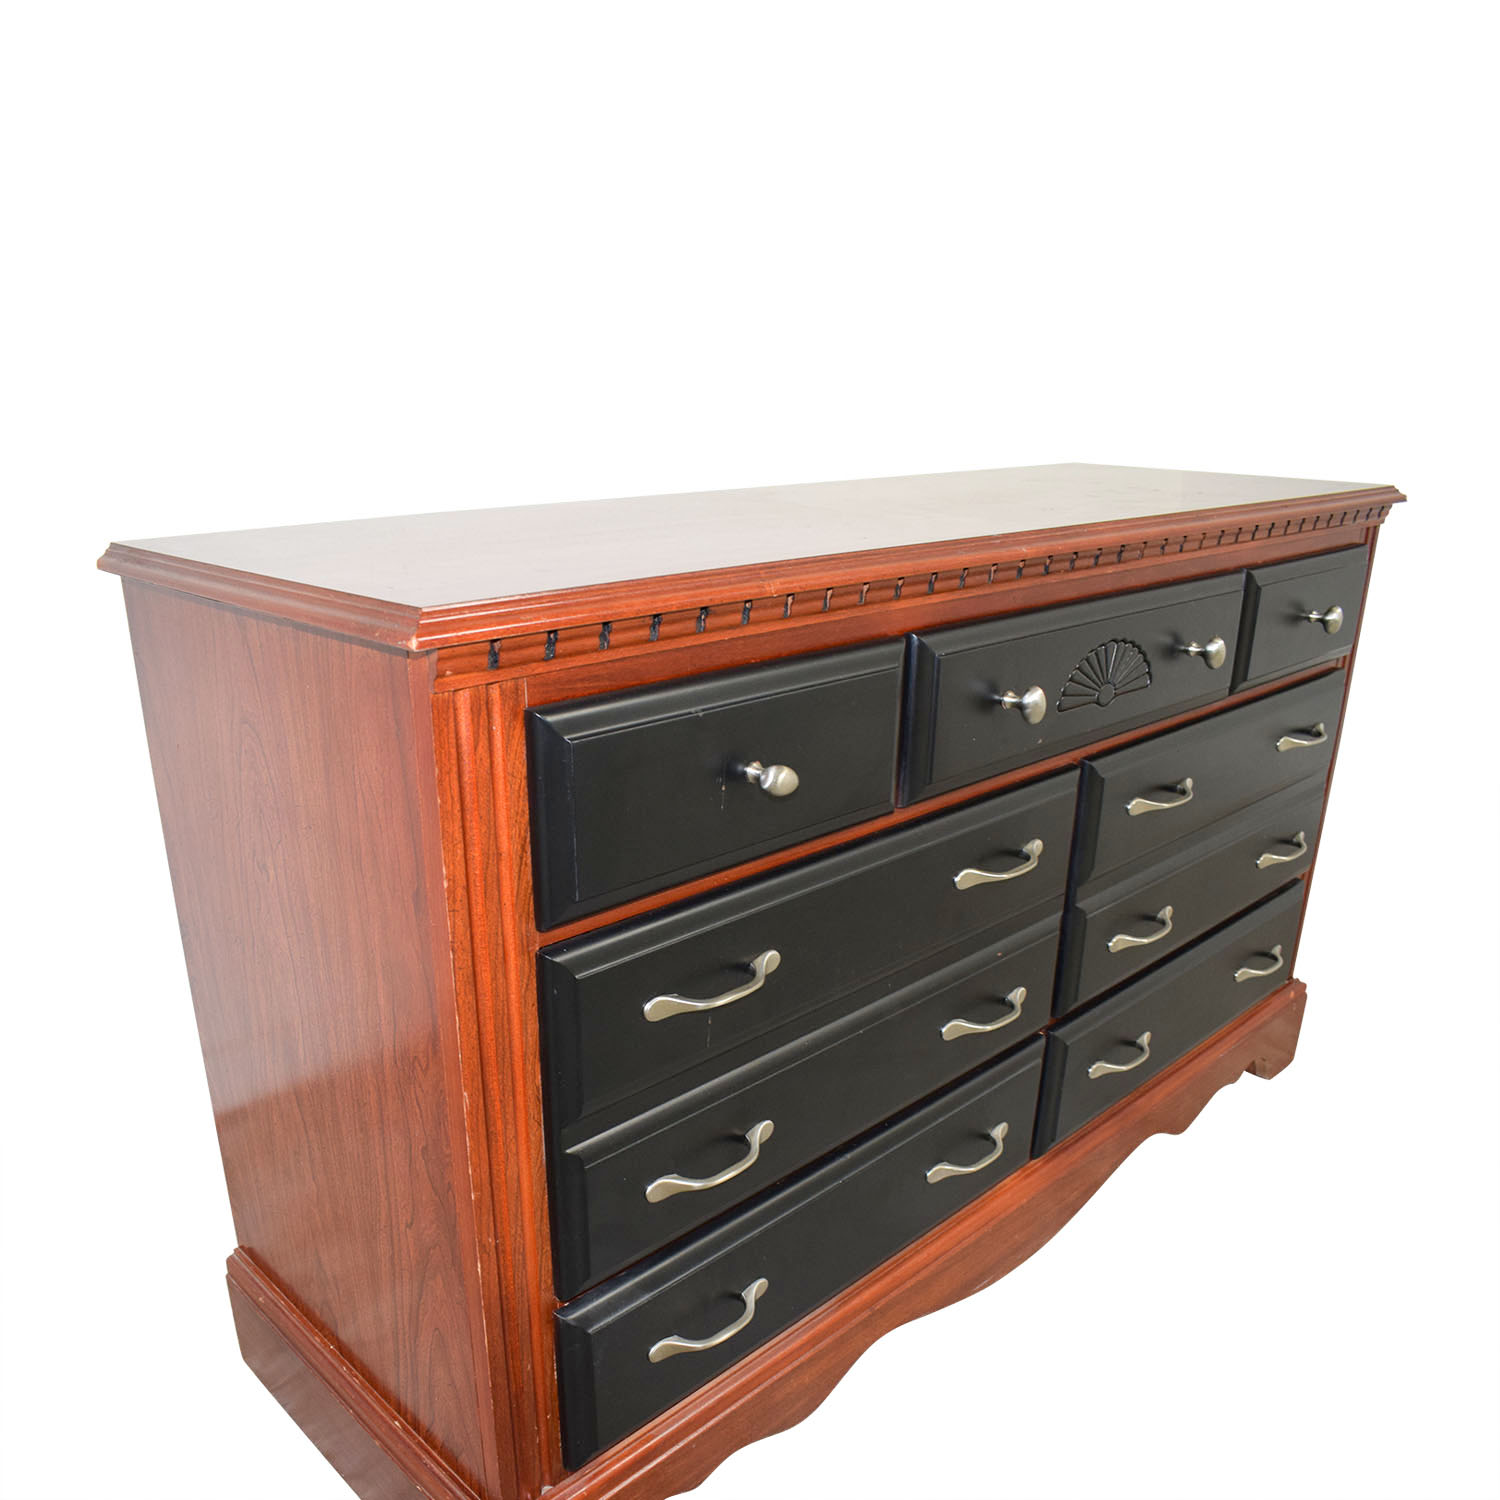 buy Two-Toned Black and Wood Seven-Drawer Dresser Storage